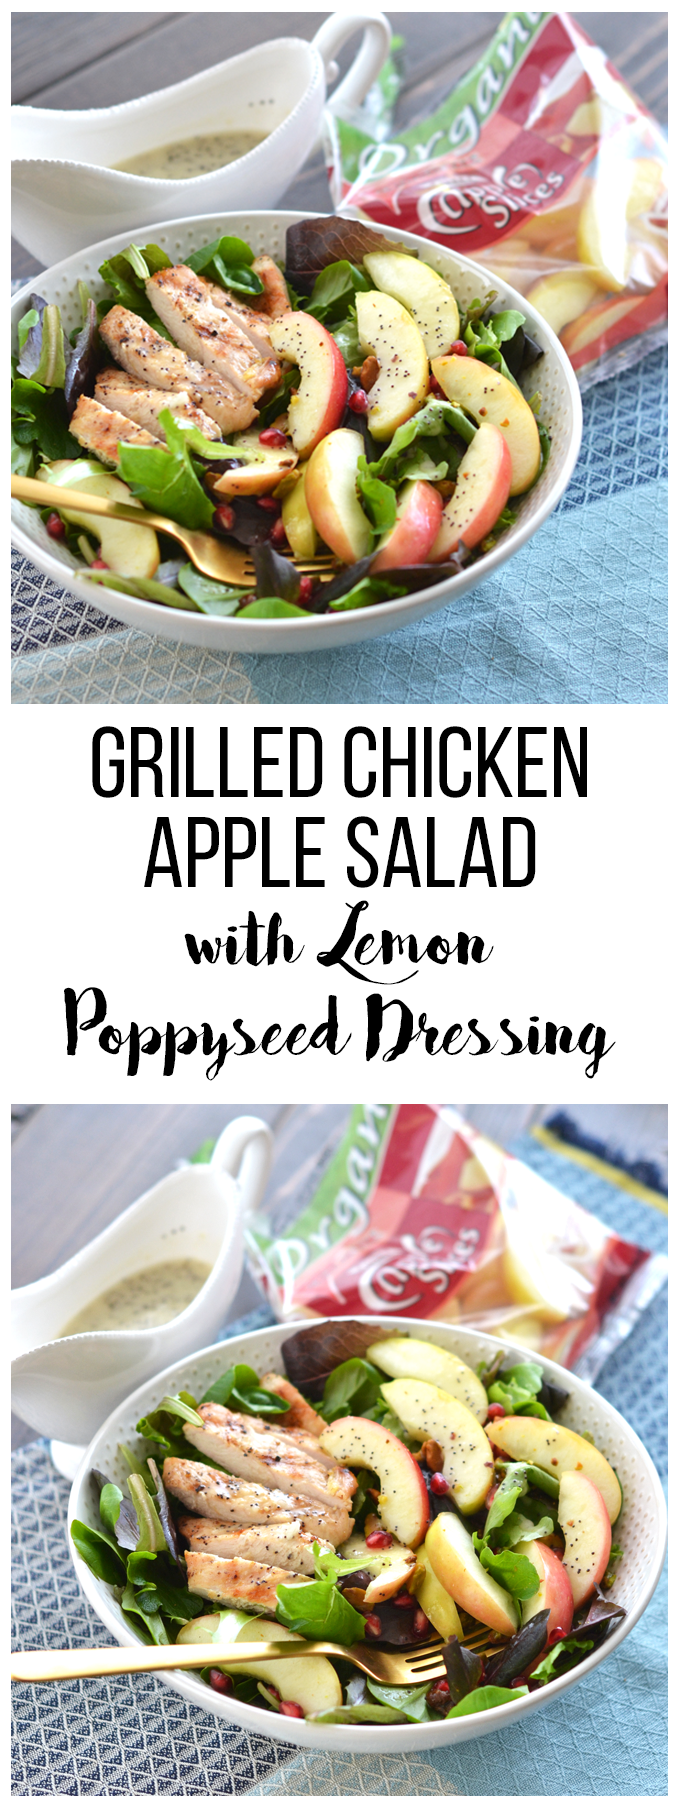 This Grilled Chicken Apple Salad with Lemon Poppyseed Dressing is the perfect spring salad for busy weeknights or weekends! Crunch Pak apples make this super simple to throw together!